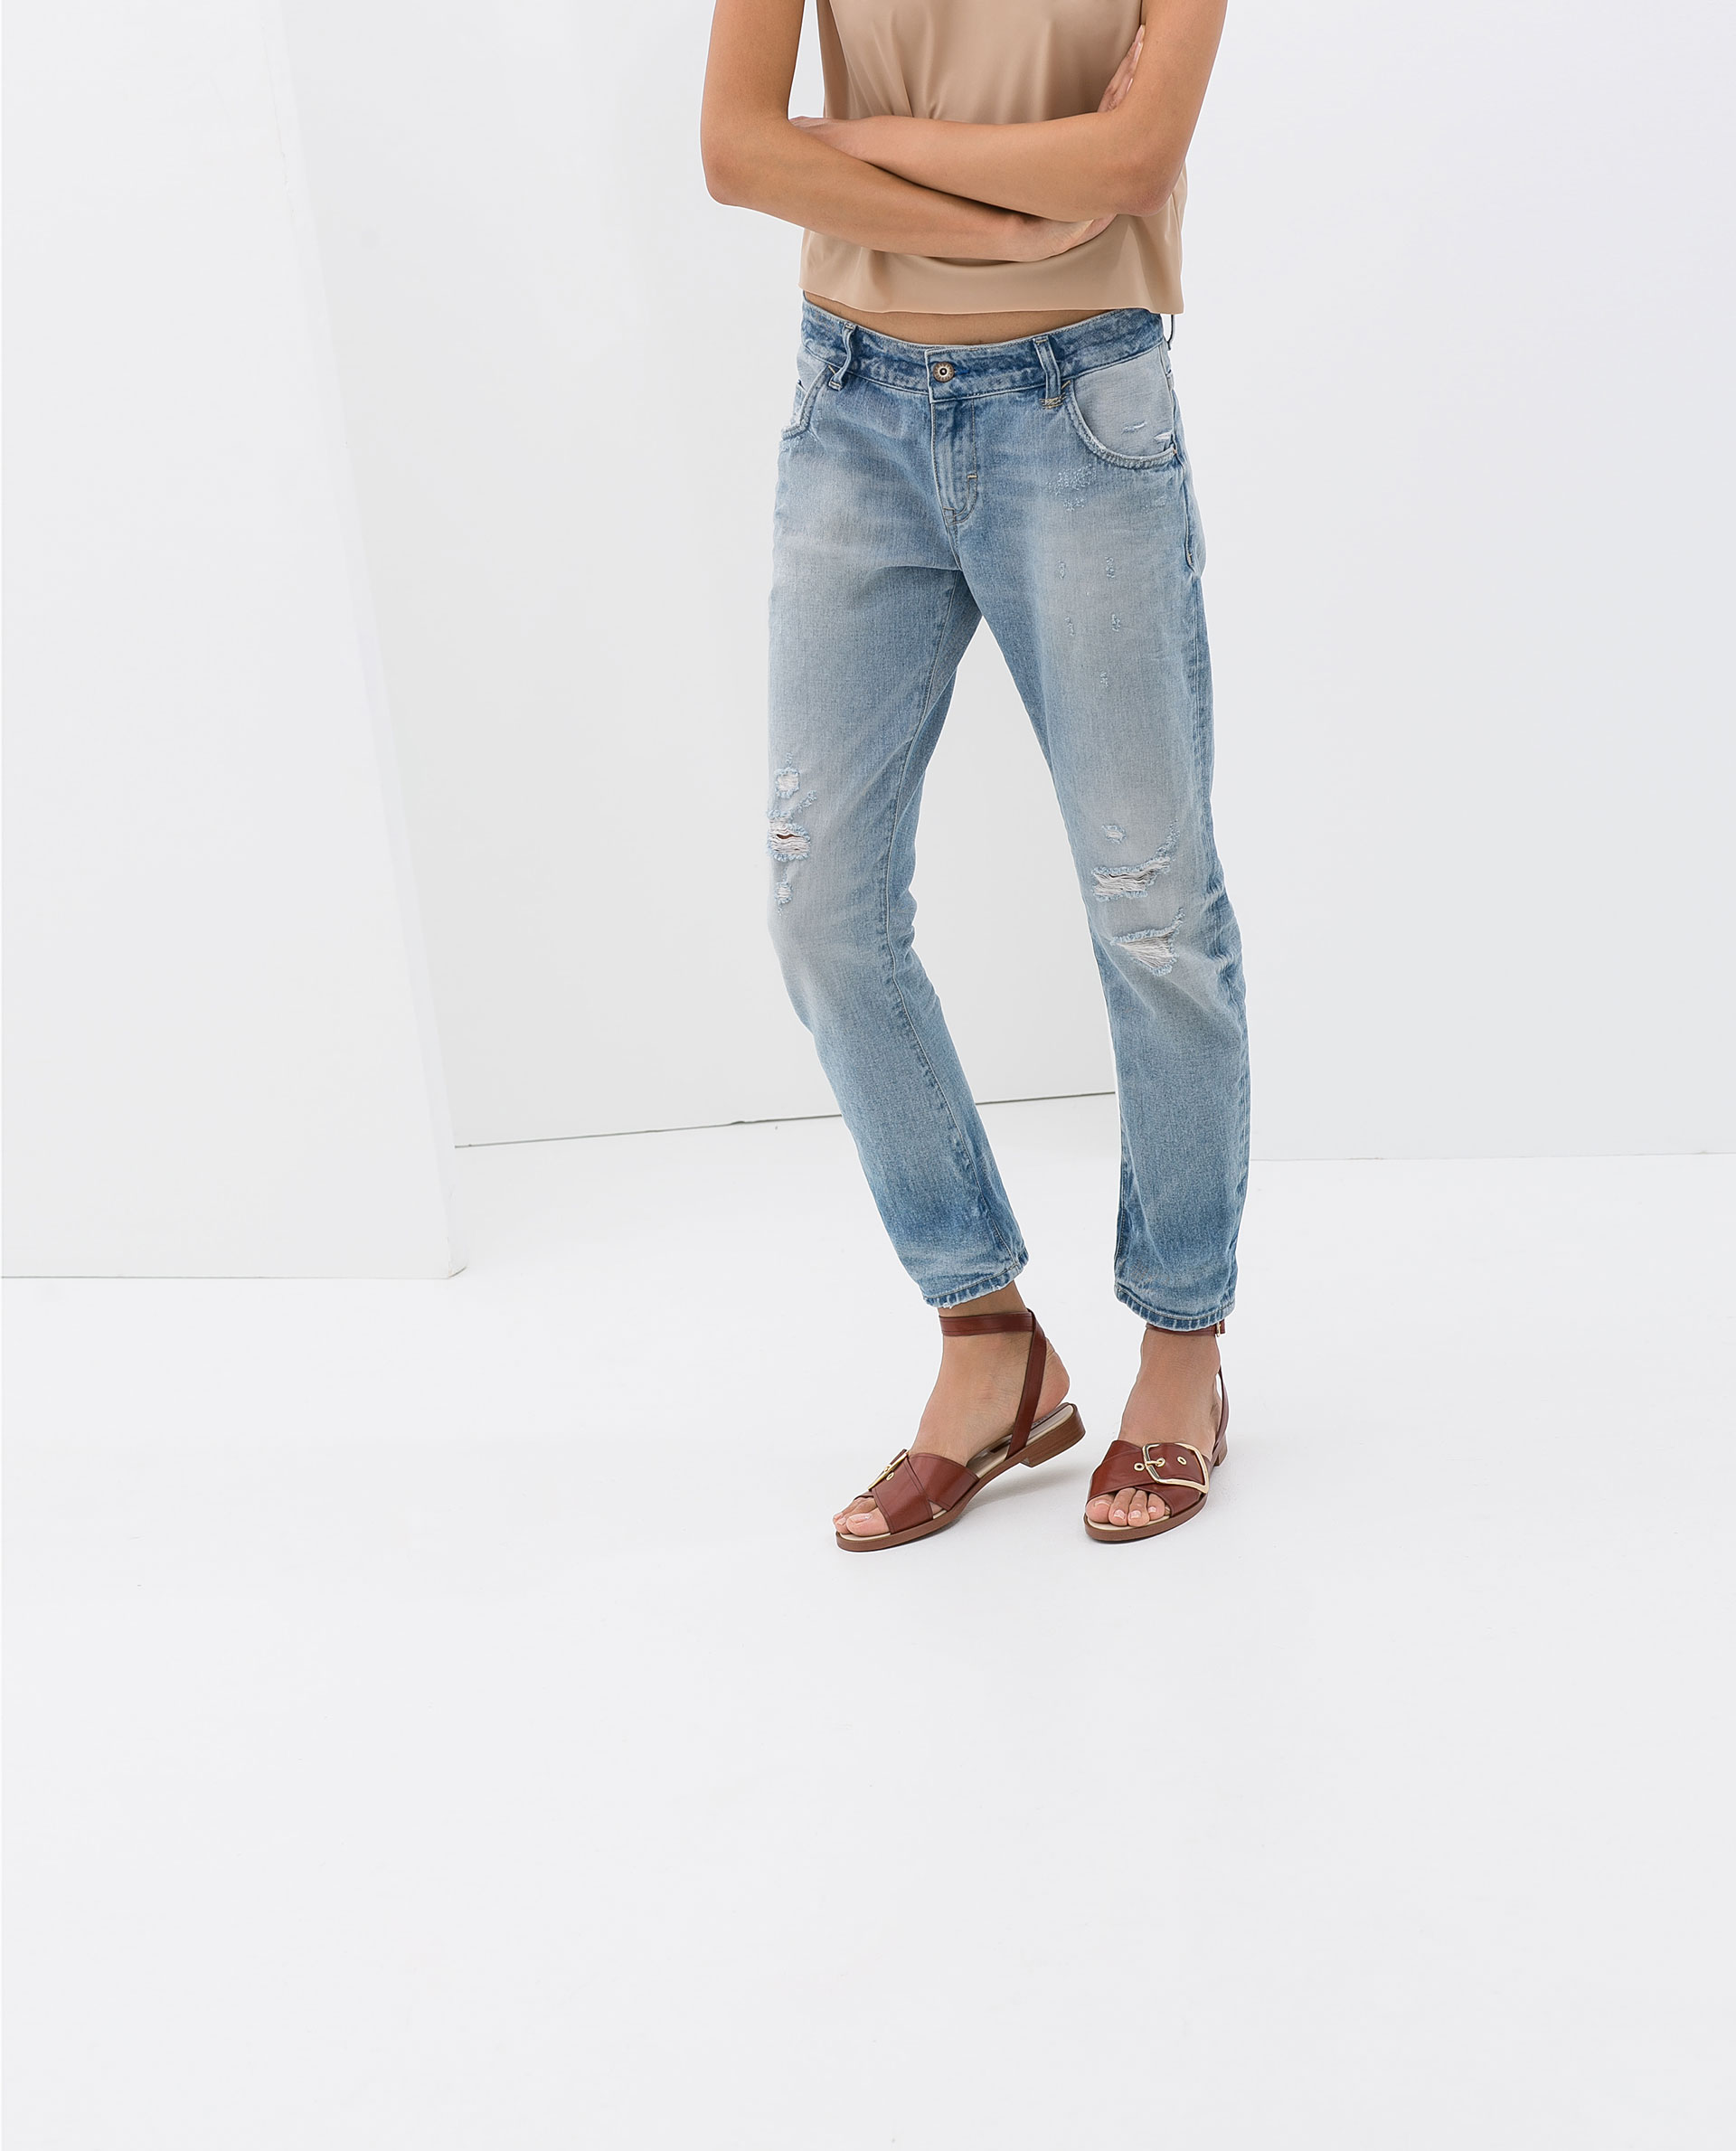 RIPPED BOYFRIEND JEANS  NEW THIS WEEK  ZARA Czech Republic